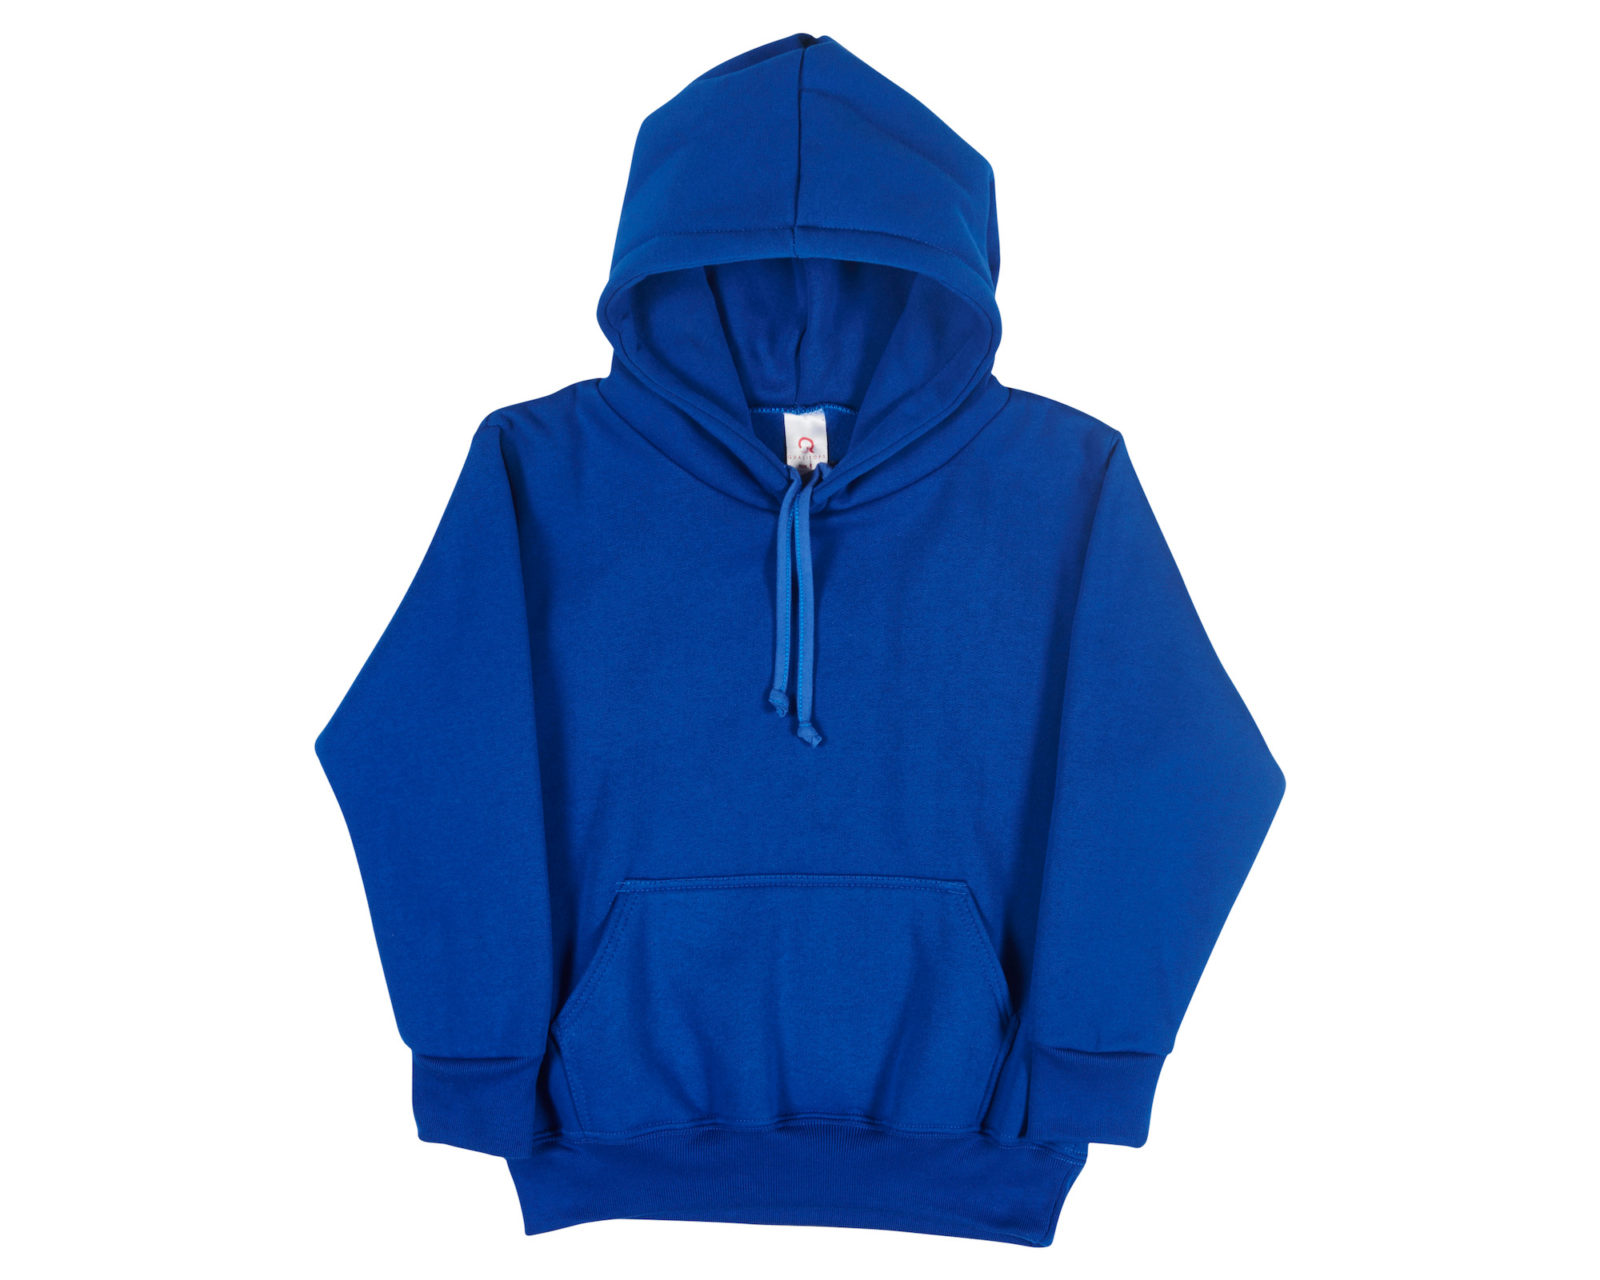 Qualitops Kids Hoodie Polycotton Australian made clothing